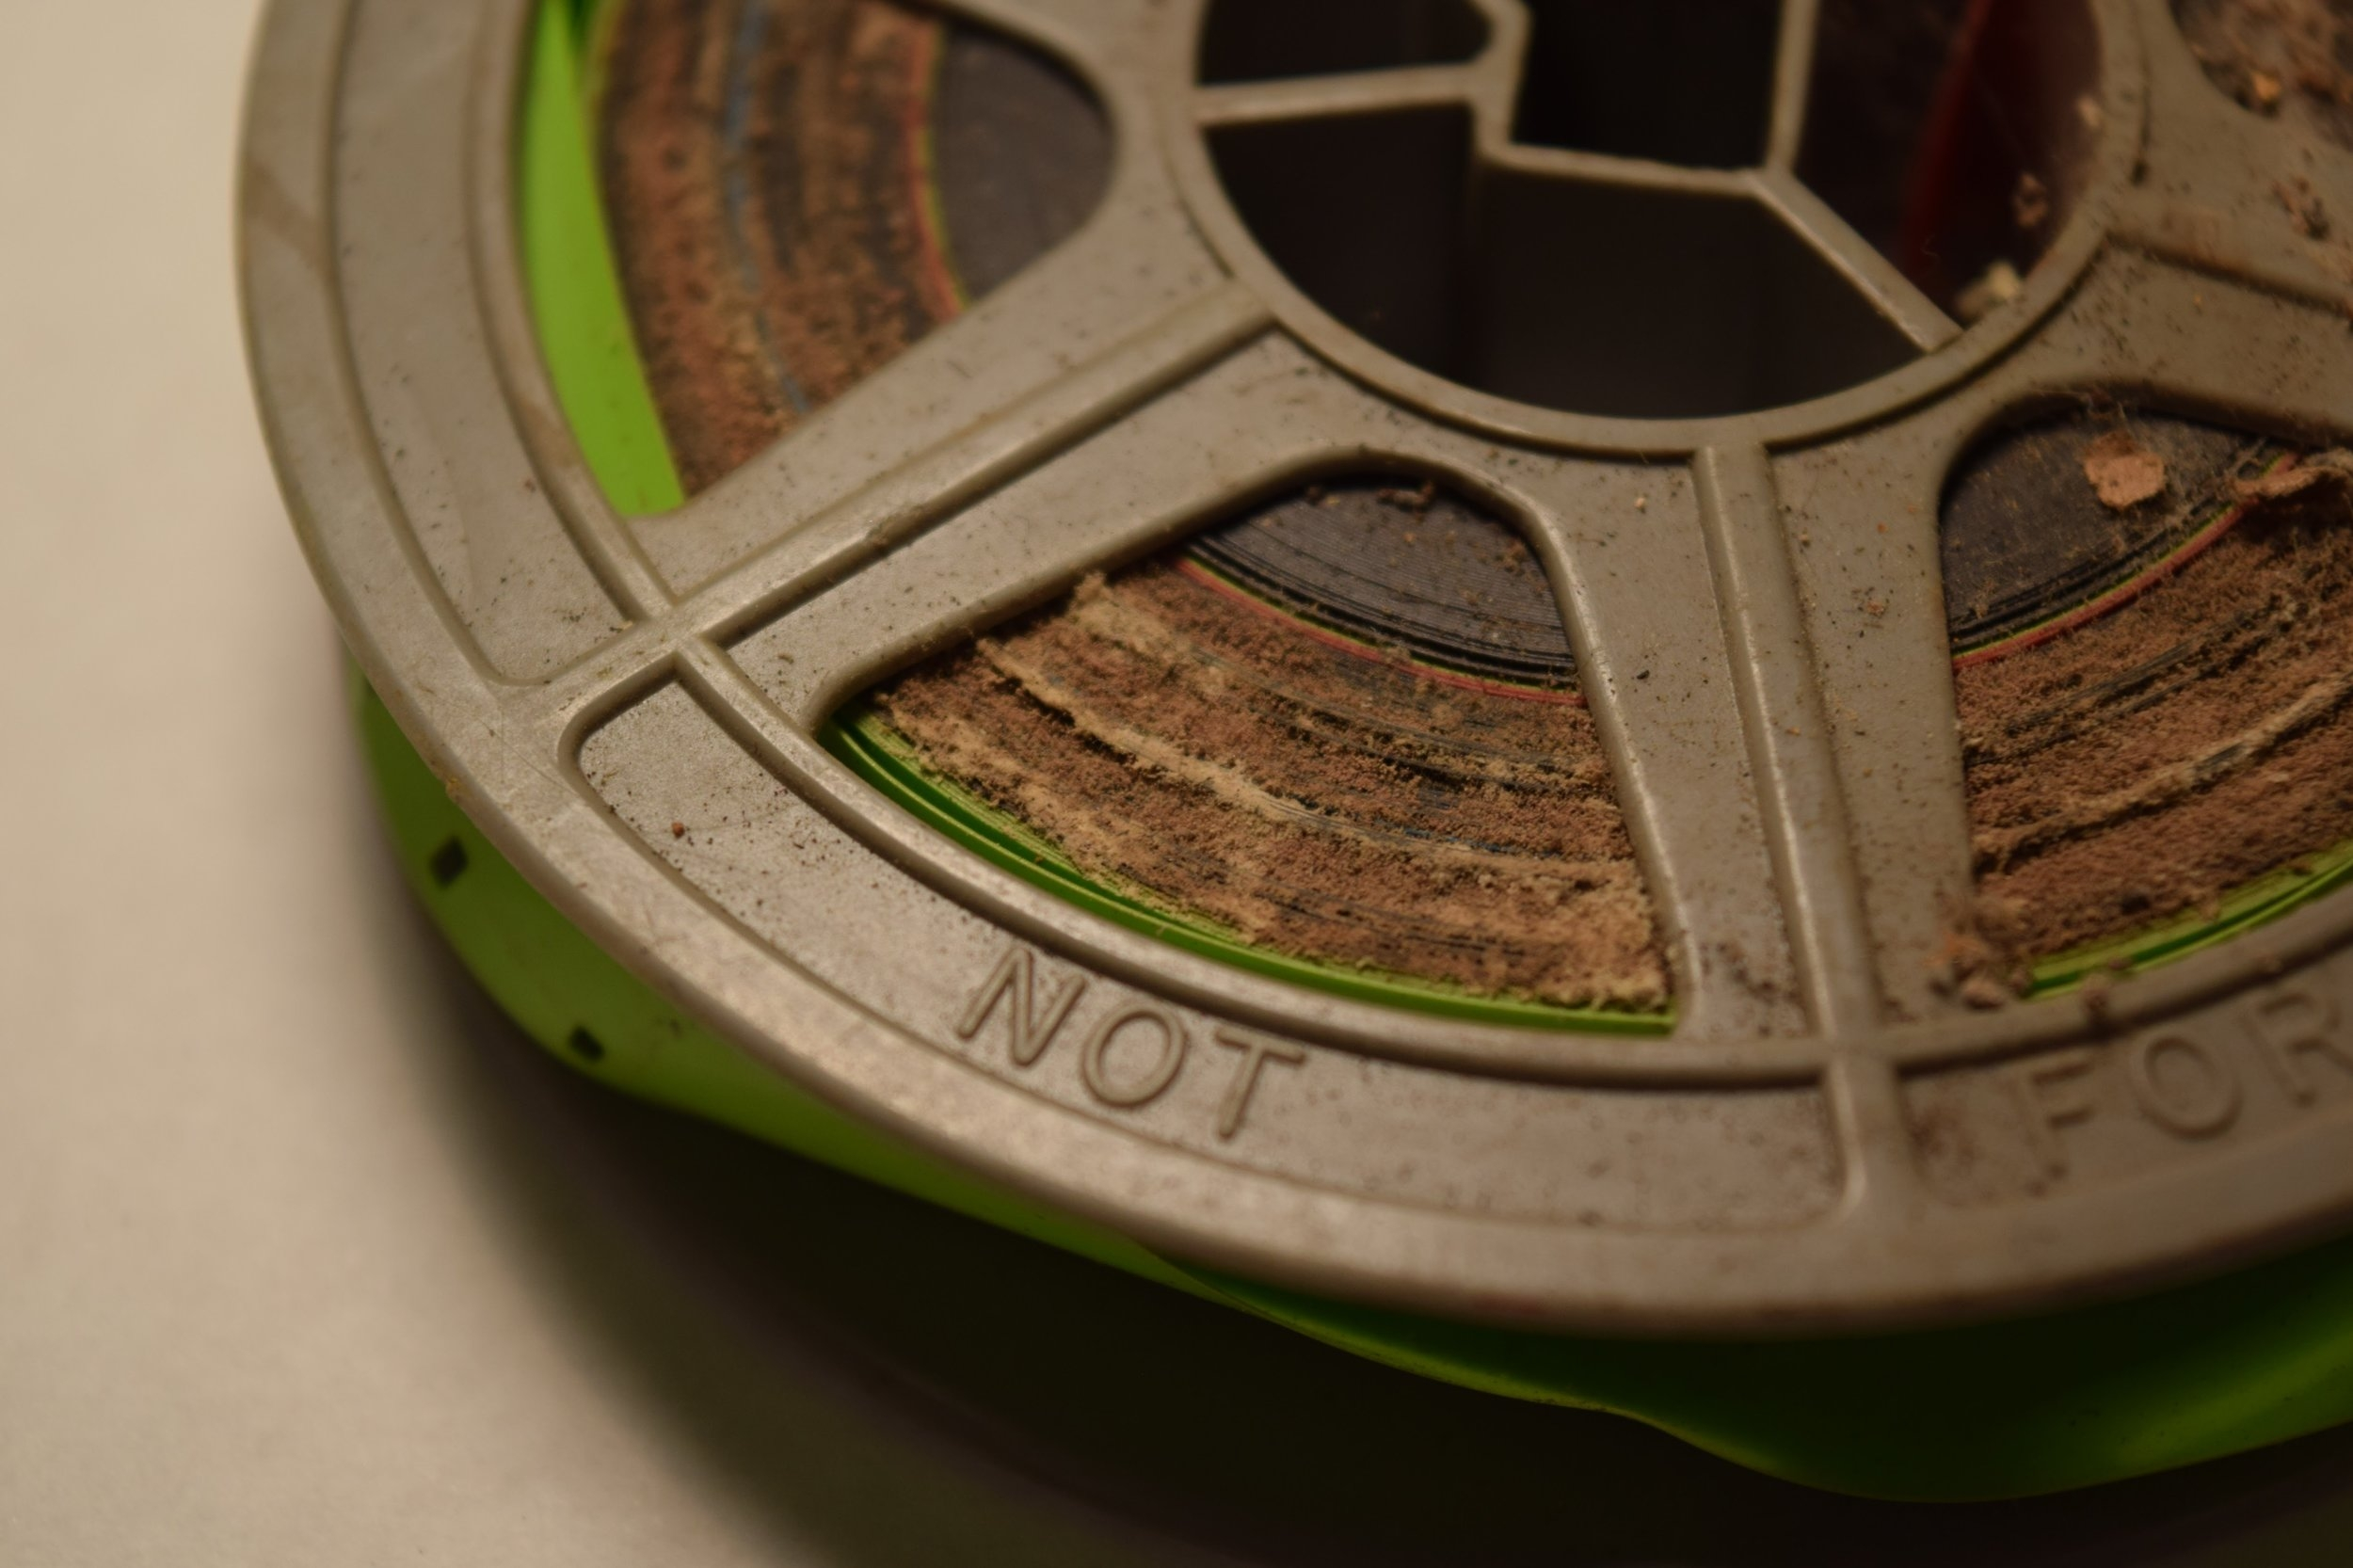 Mold growth on 16mm film